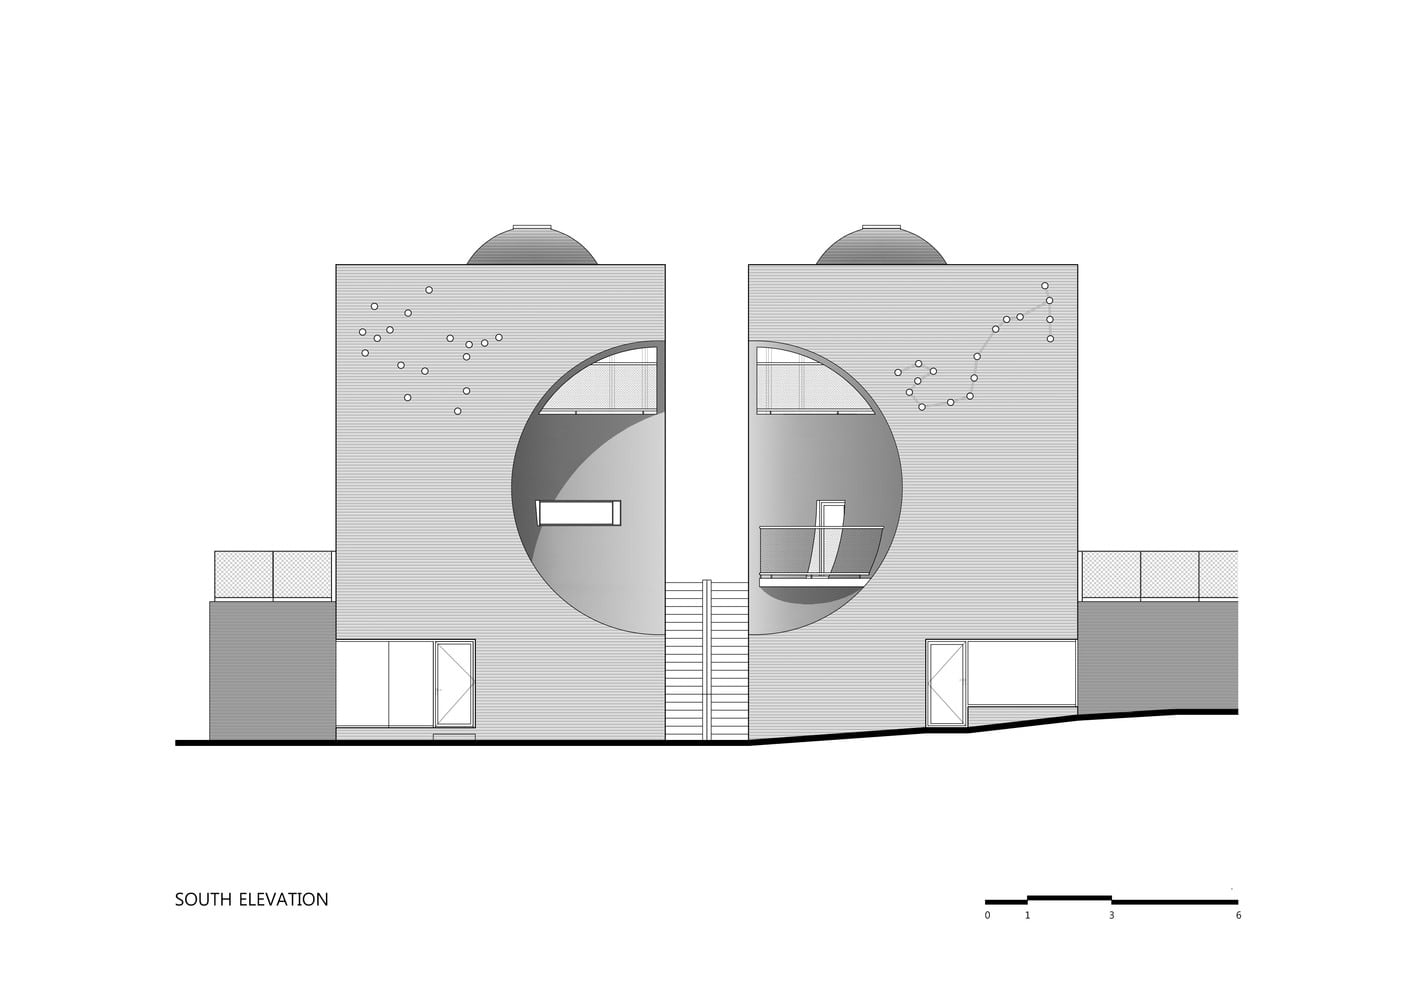 South_Elevation